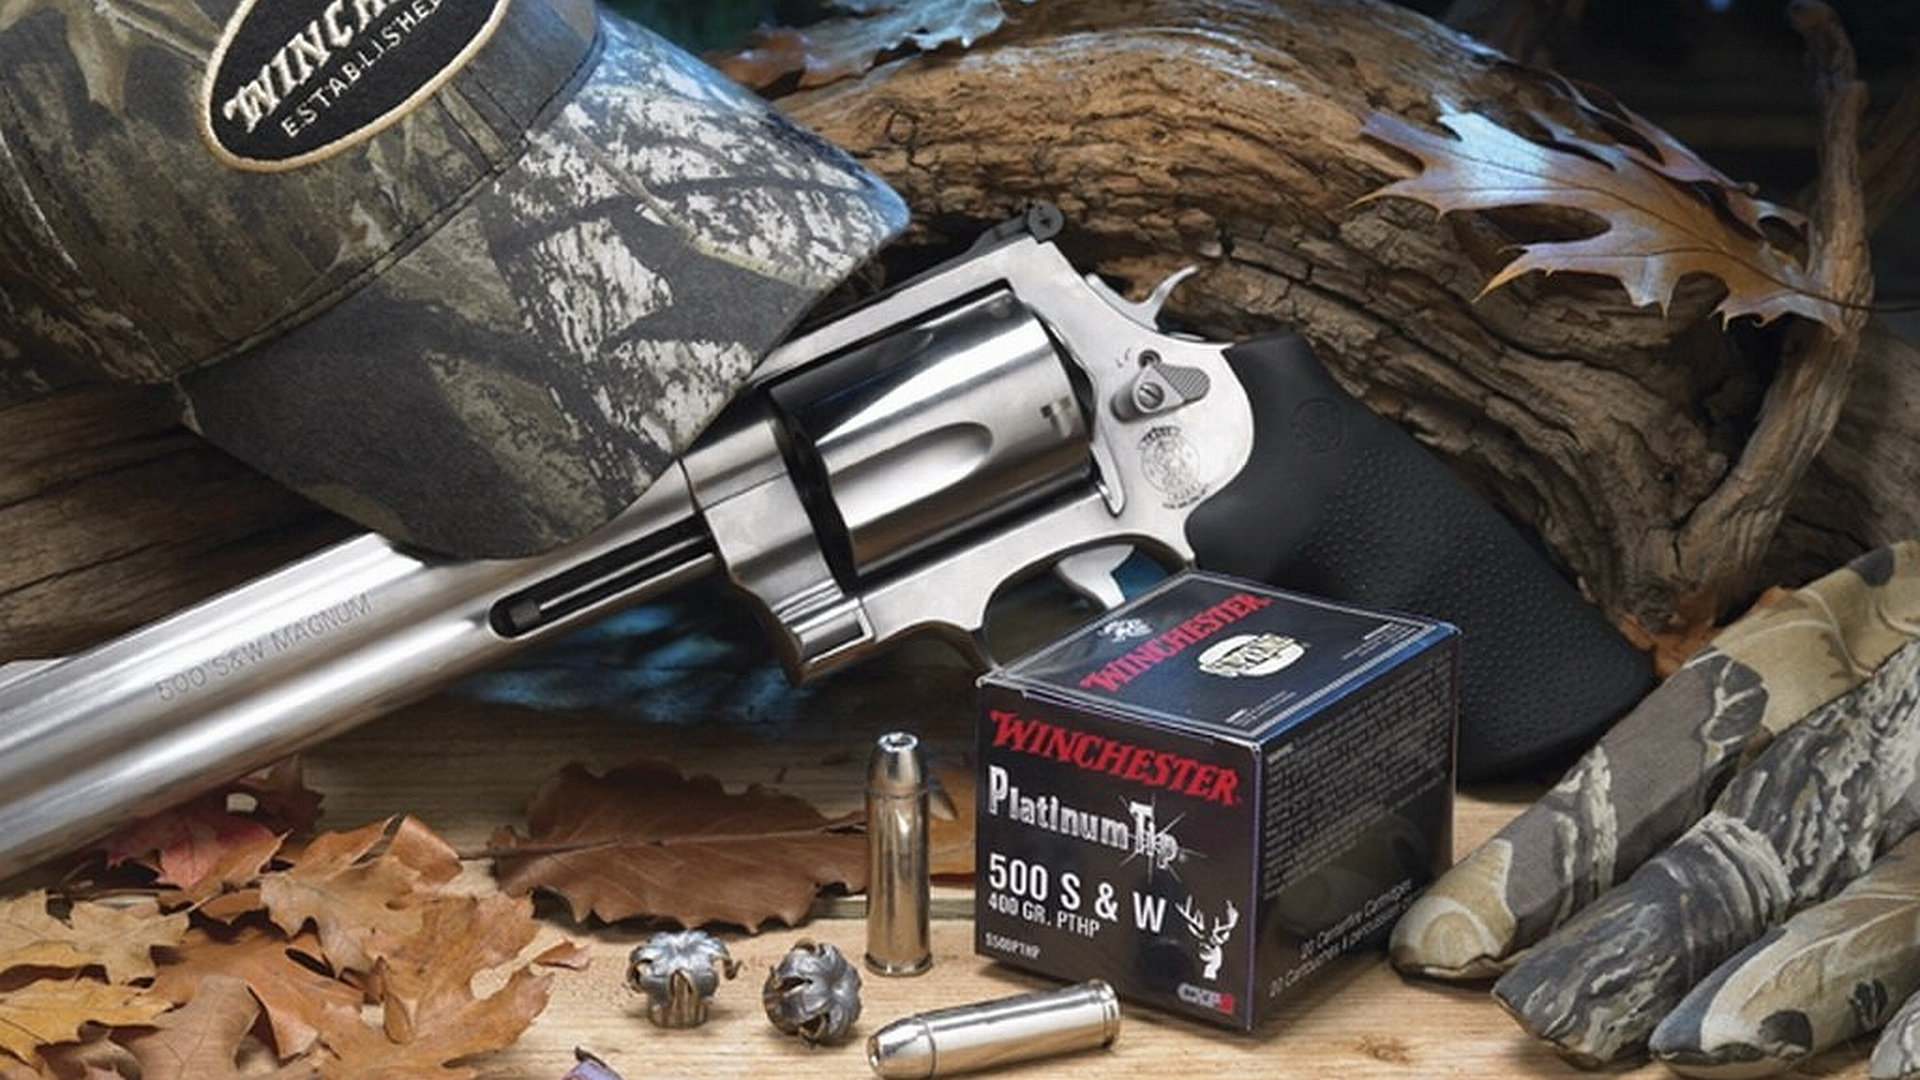 Smith Wesson 500 Magnum Revolver Computer Wallpapers Desktop 1920x1080